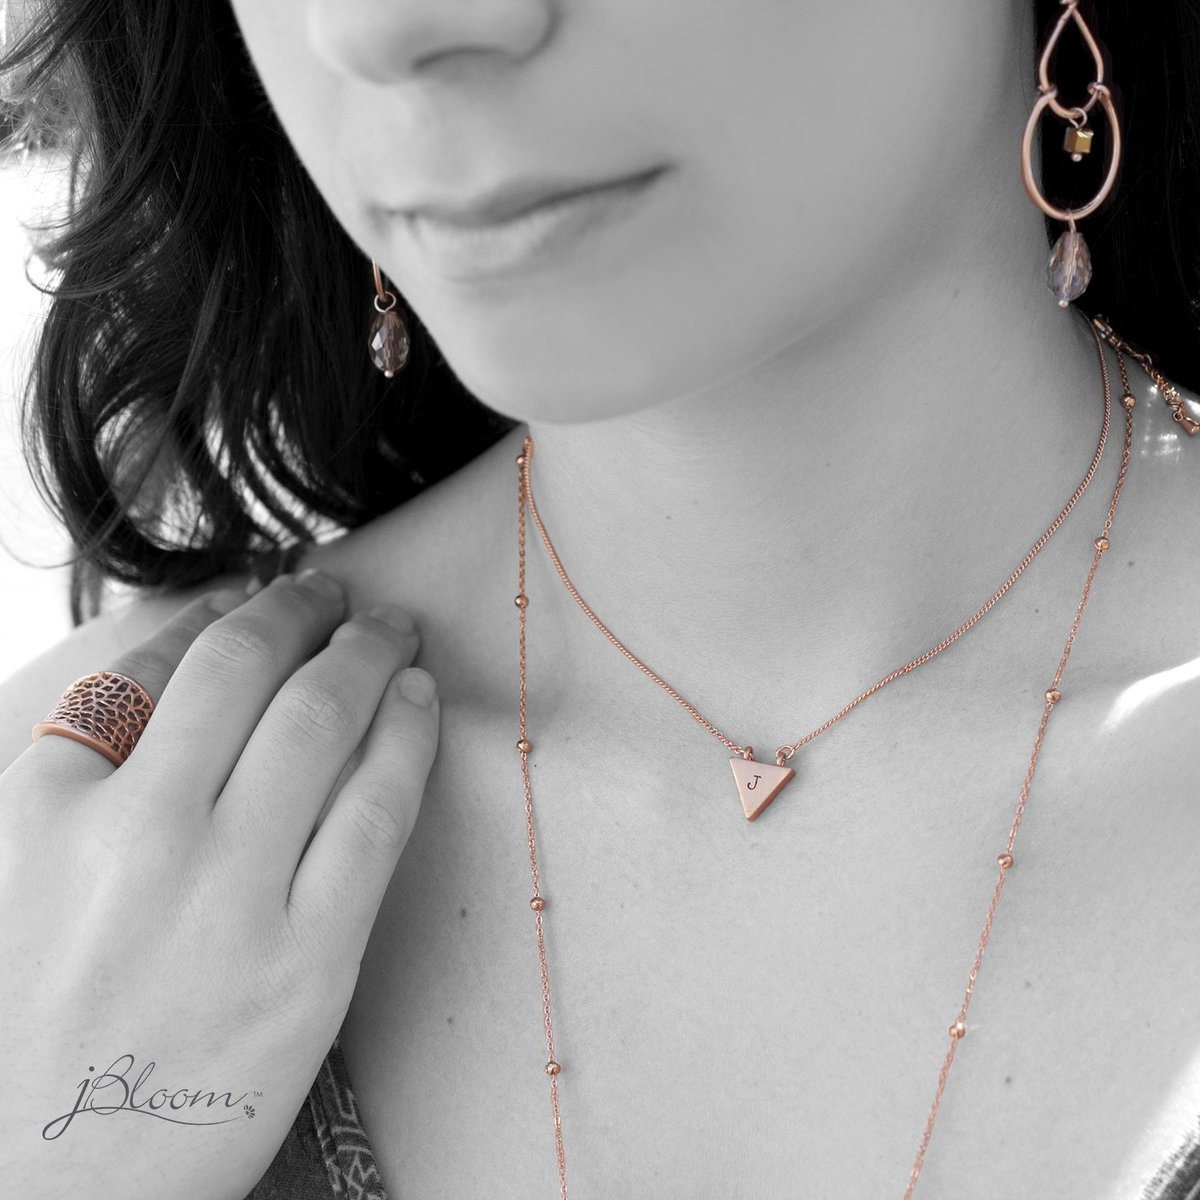 Stand Out Designs Jewelry : Jewellery trends that are here to stay u diai designs